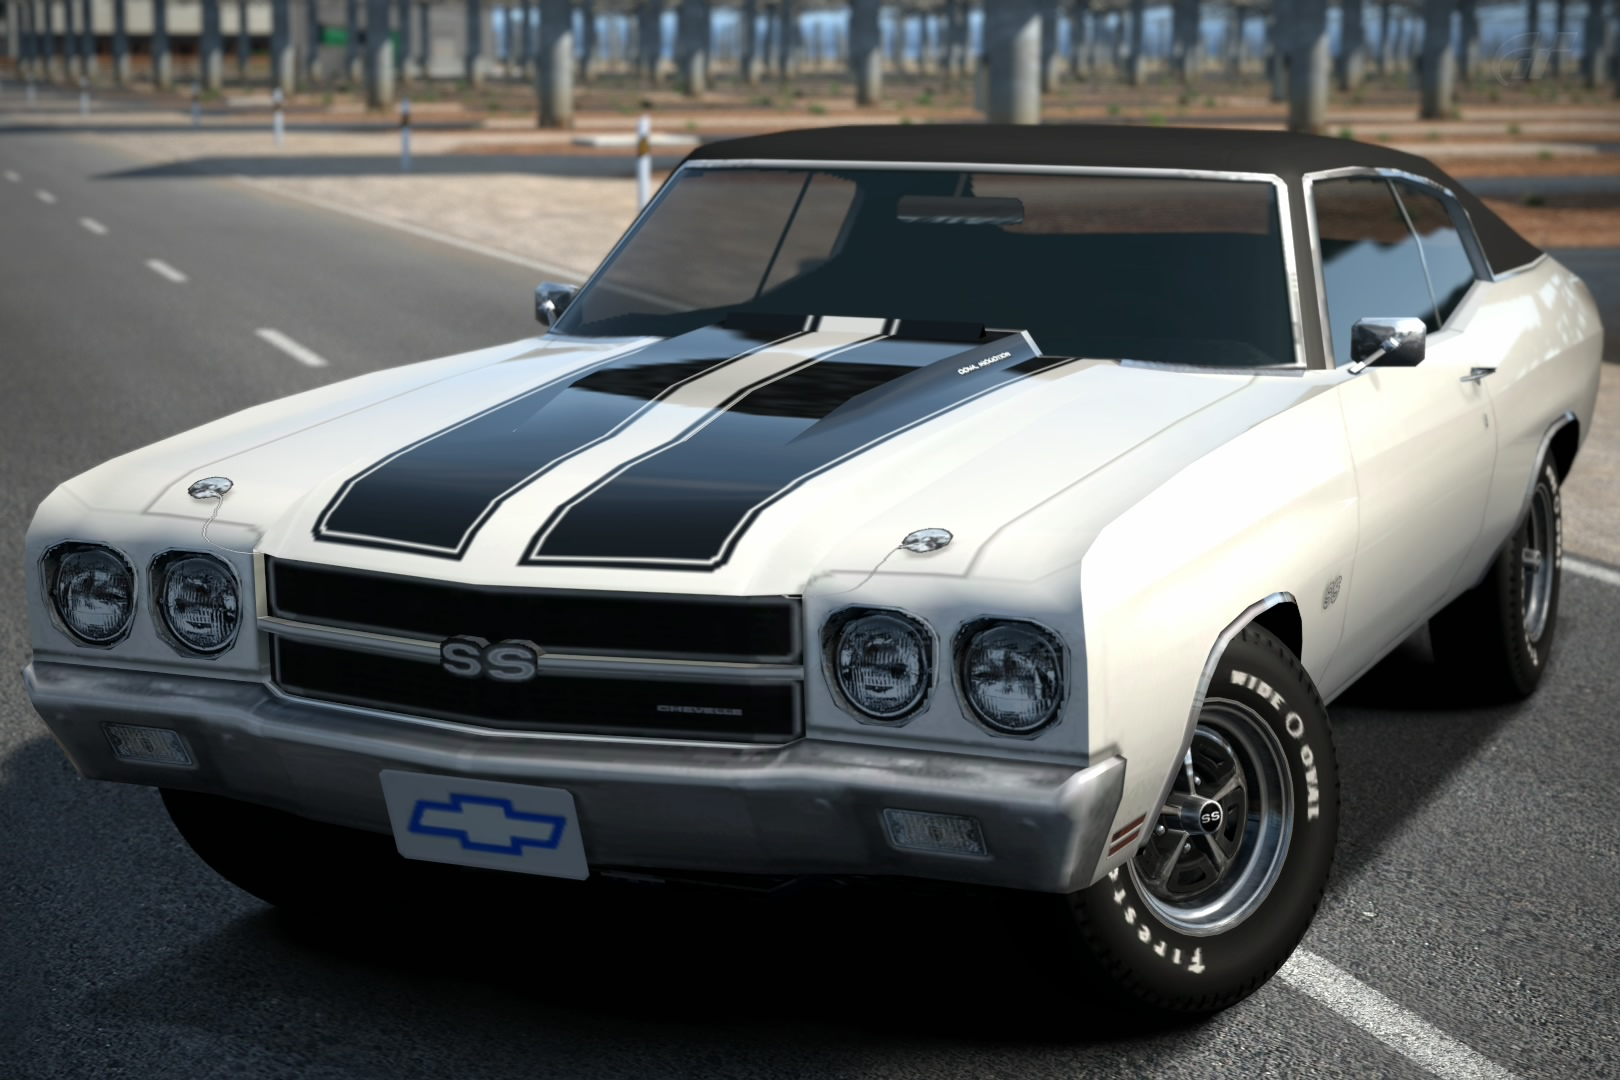 chevrolet chevelle ss 454 39 70 gran turismo wiki fandom powered by wikia. Black Bedroom Furniture Sets. Home Design Ideas